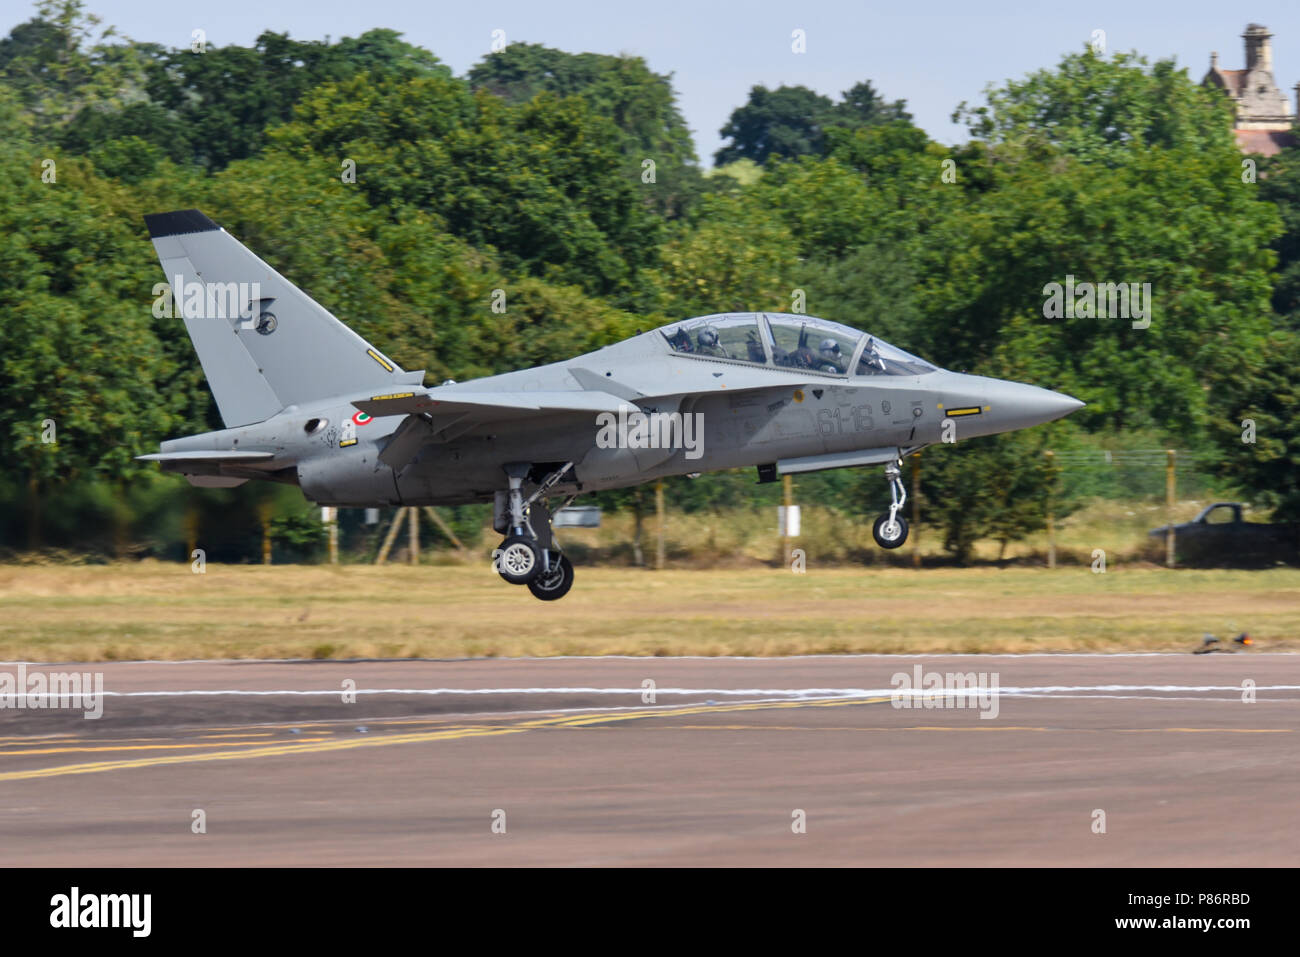 Italian Air Force T-346A Alenia Aermacchi M-346 Master military twin-engine transonic trainer aircraft arriving for the Royal International Air Tattoo, RIAT 2018, RAF Fairford airshow - Stock Image